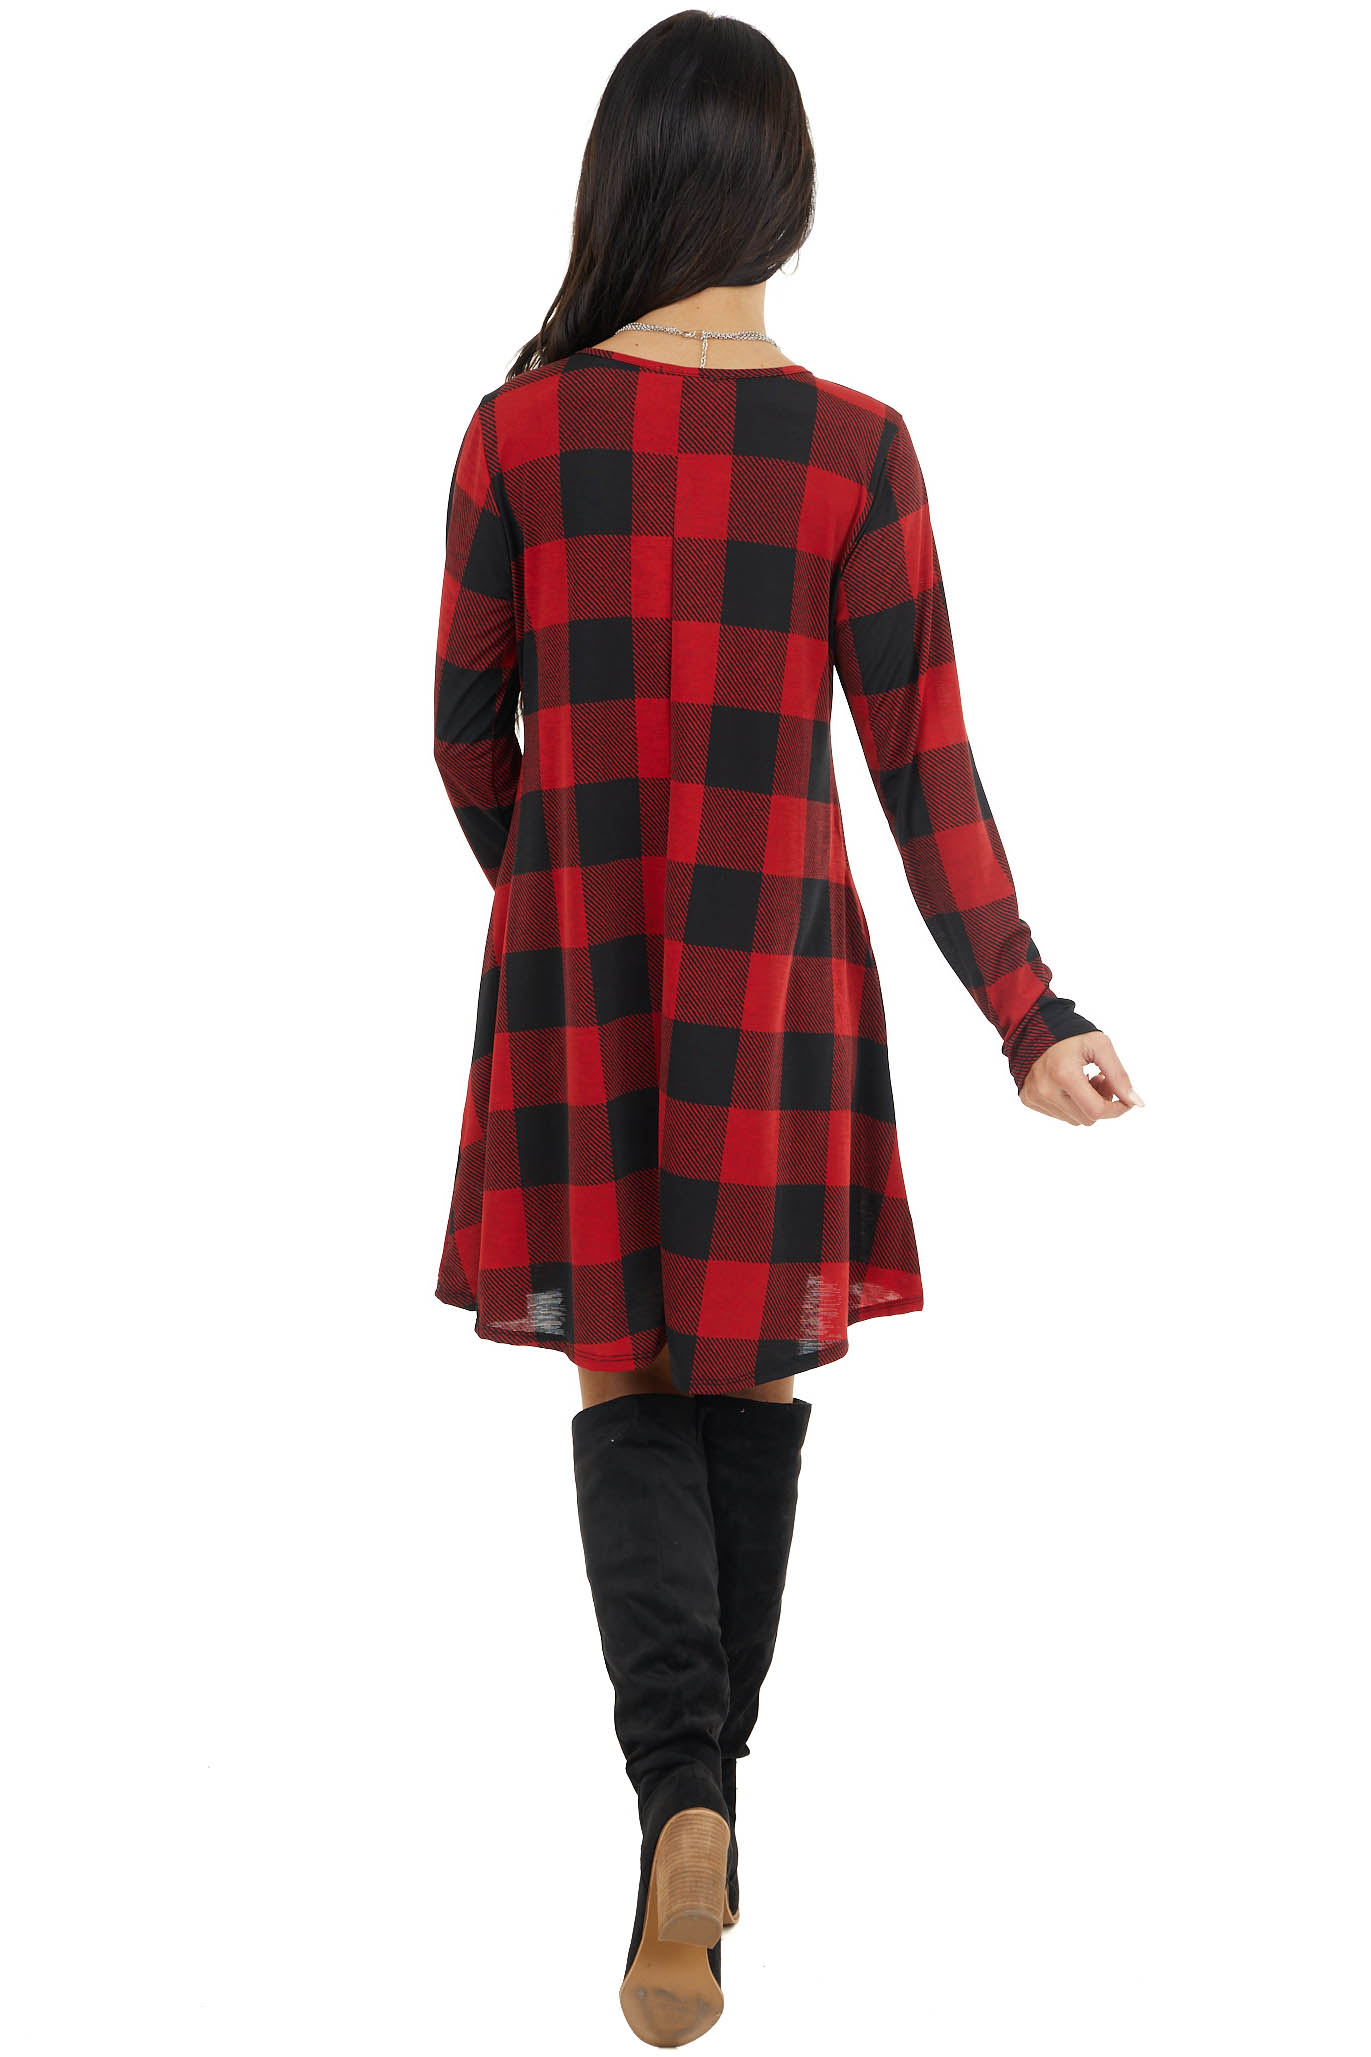 Crimson Red Buffalo Plaid Long Sleeve Knit Dress